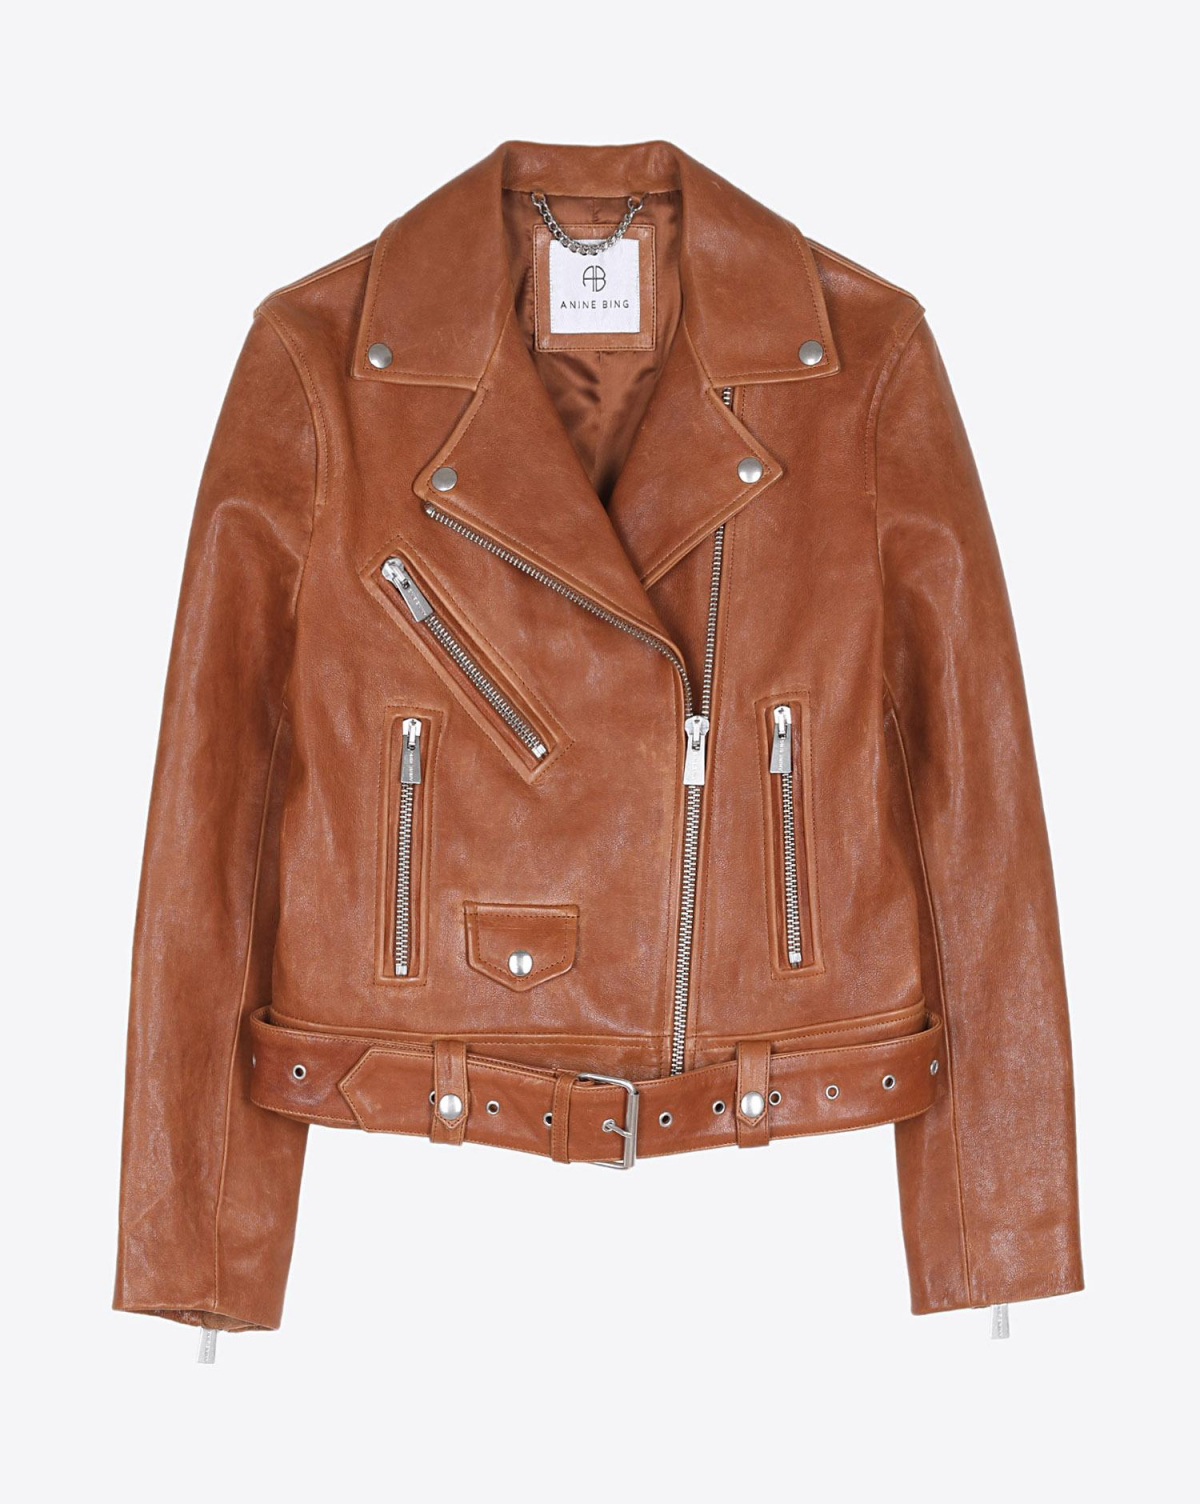 Anine Bing Benjamin Leather Jacket - Cognac